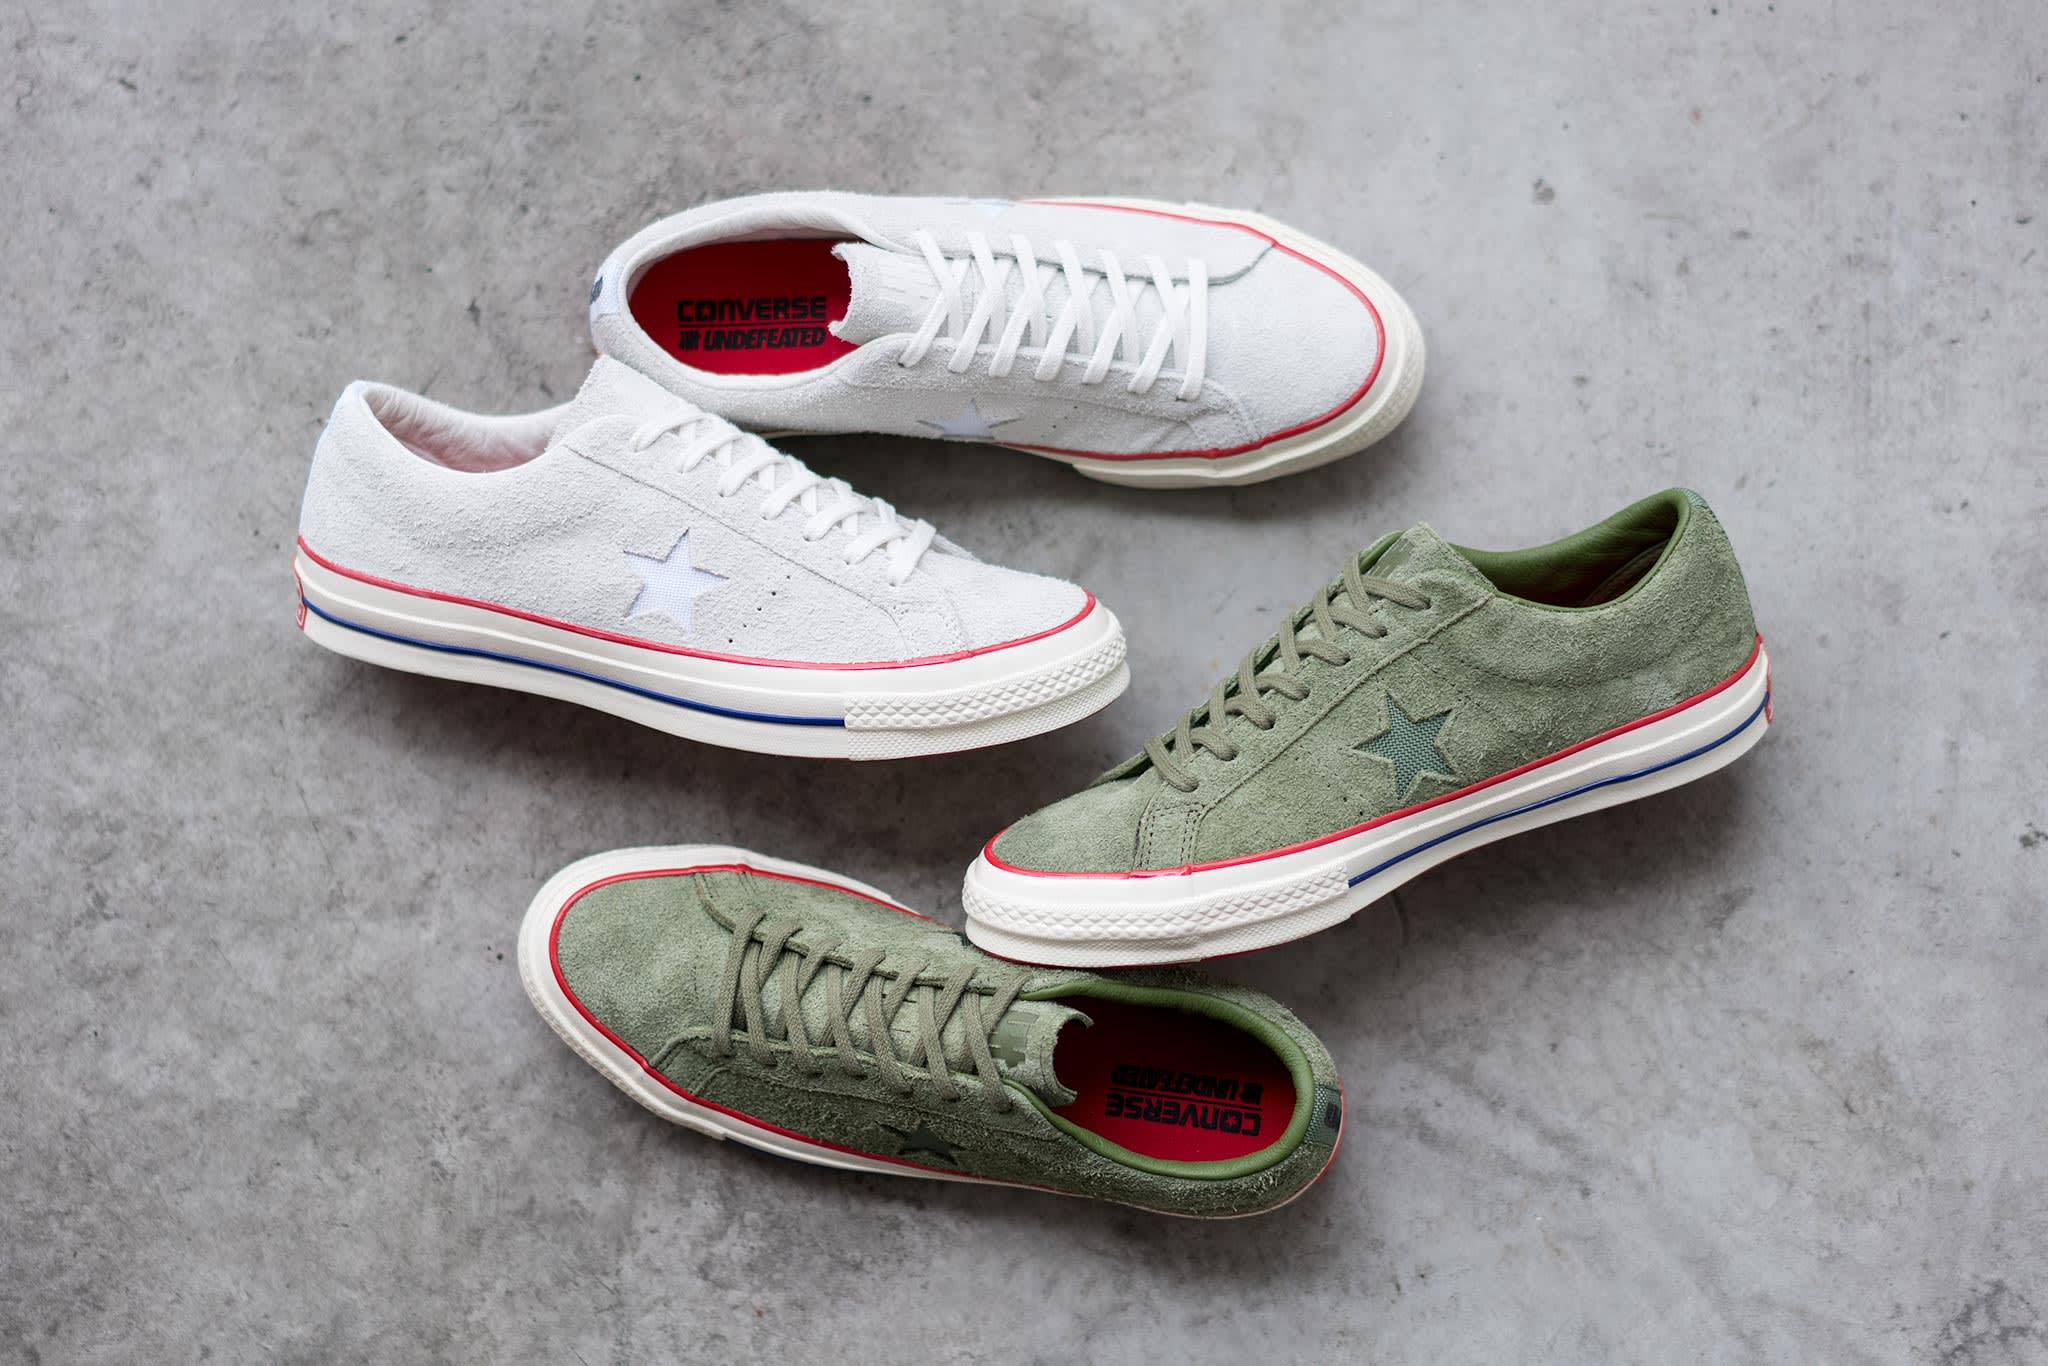 Converse x UNDEFEATED One Star Pack